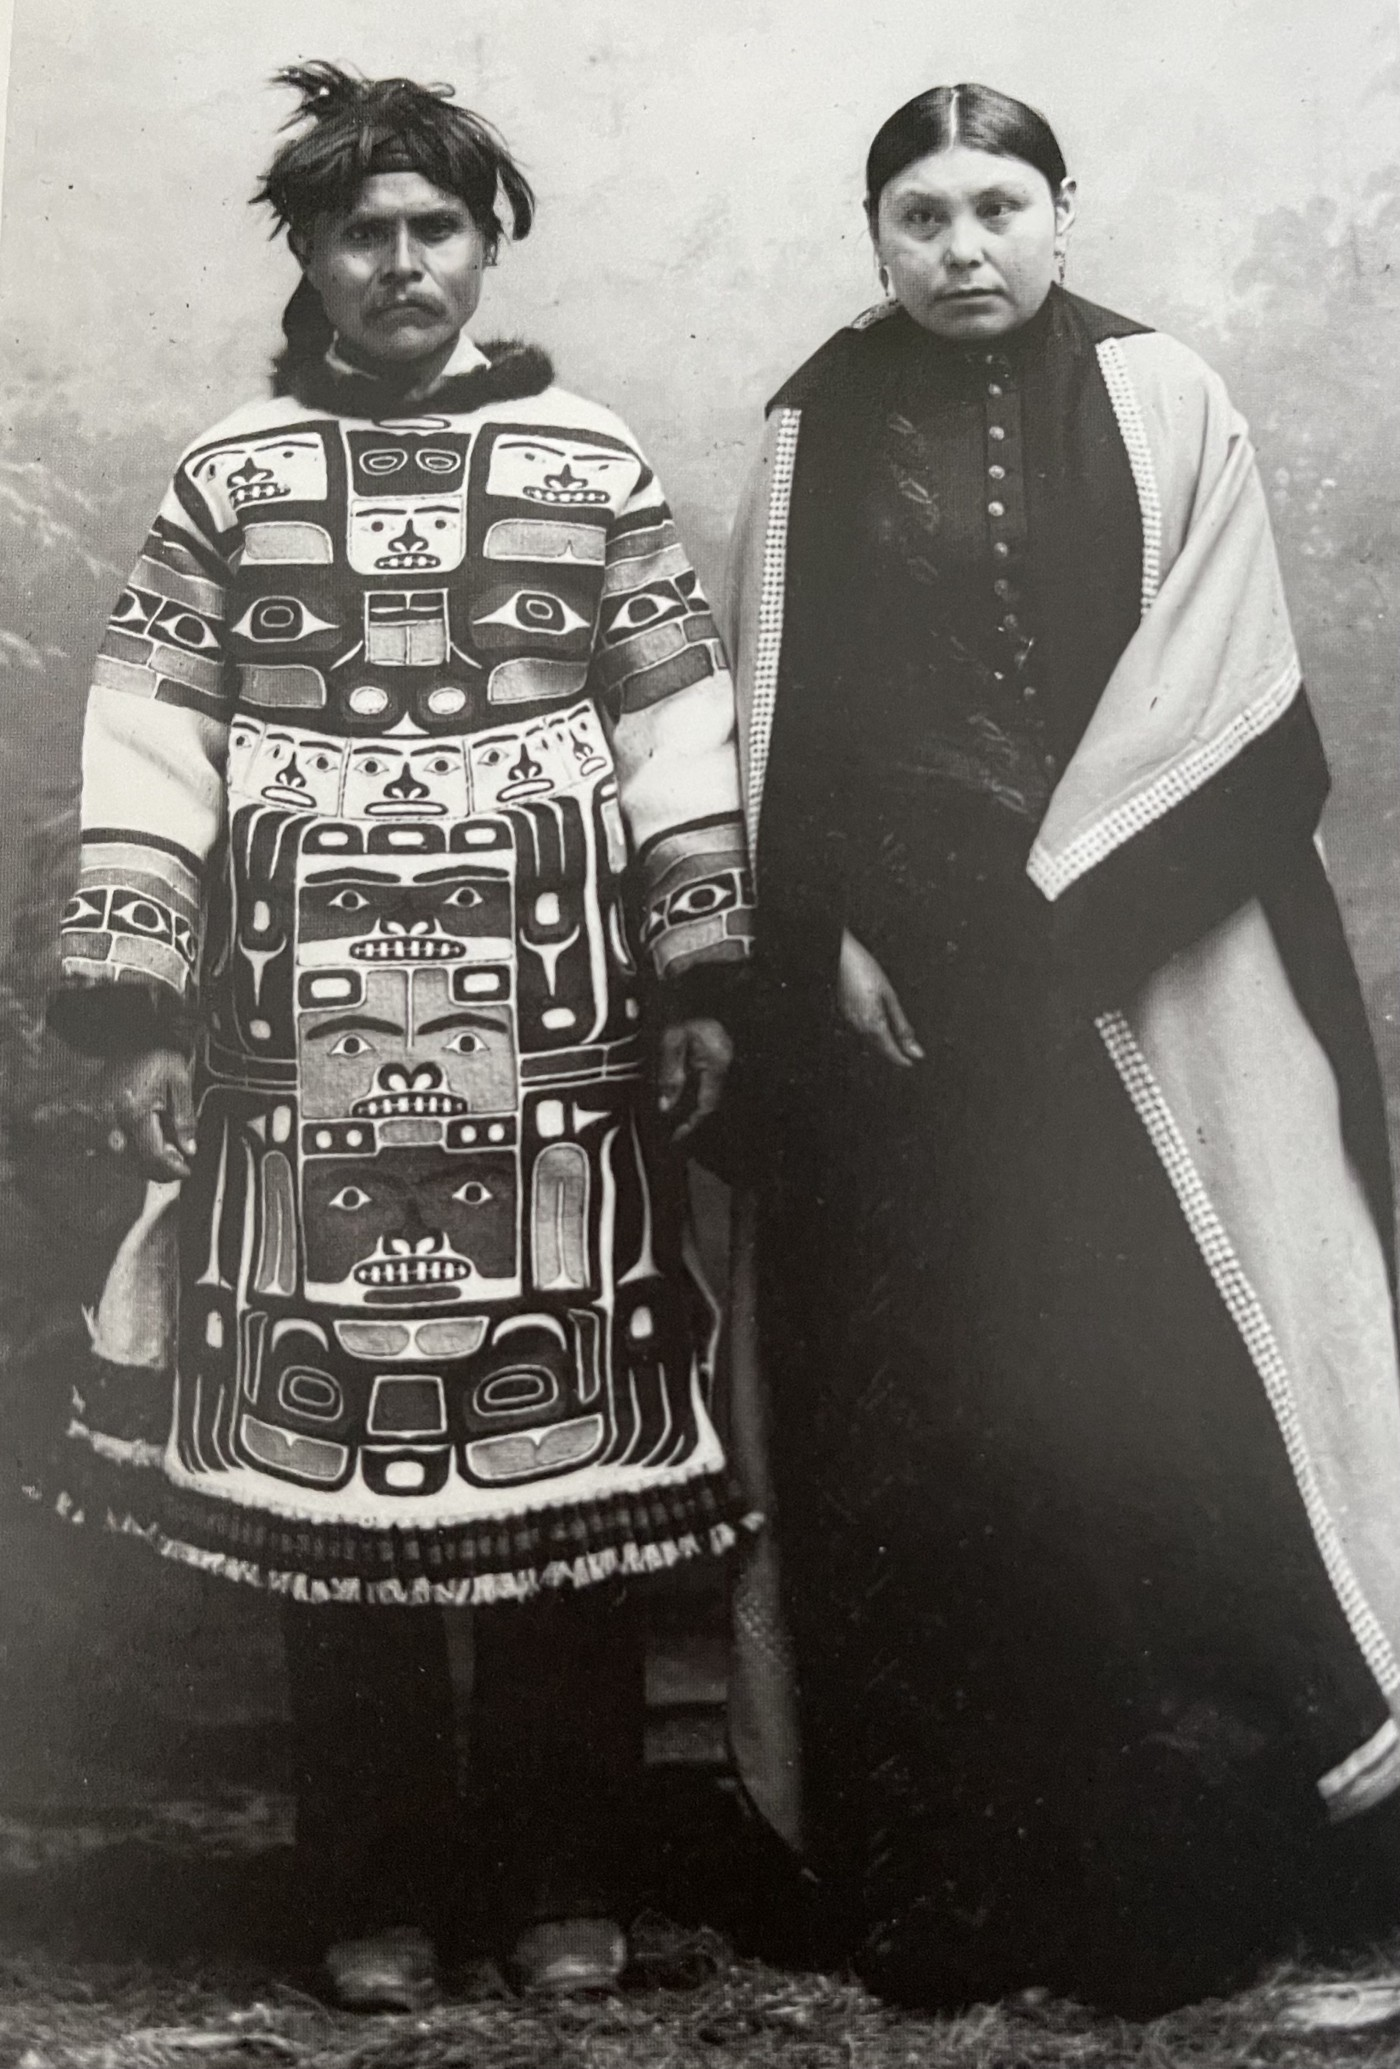 Husband in traditional attire woven geometric patterns of animals and human faces and hands. Wife in colonial black buttoned dress and cloak with shell trim.